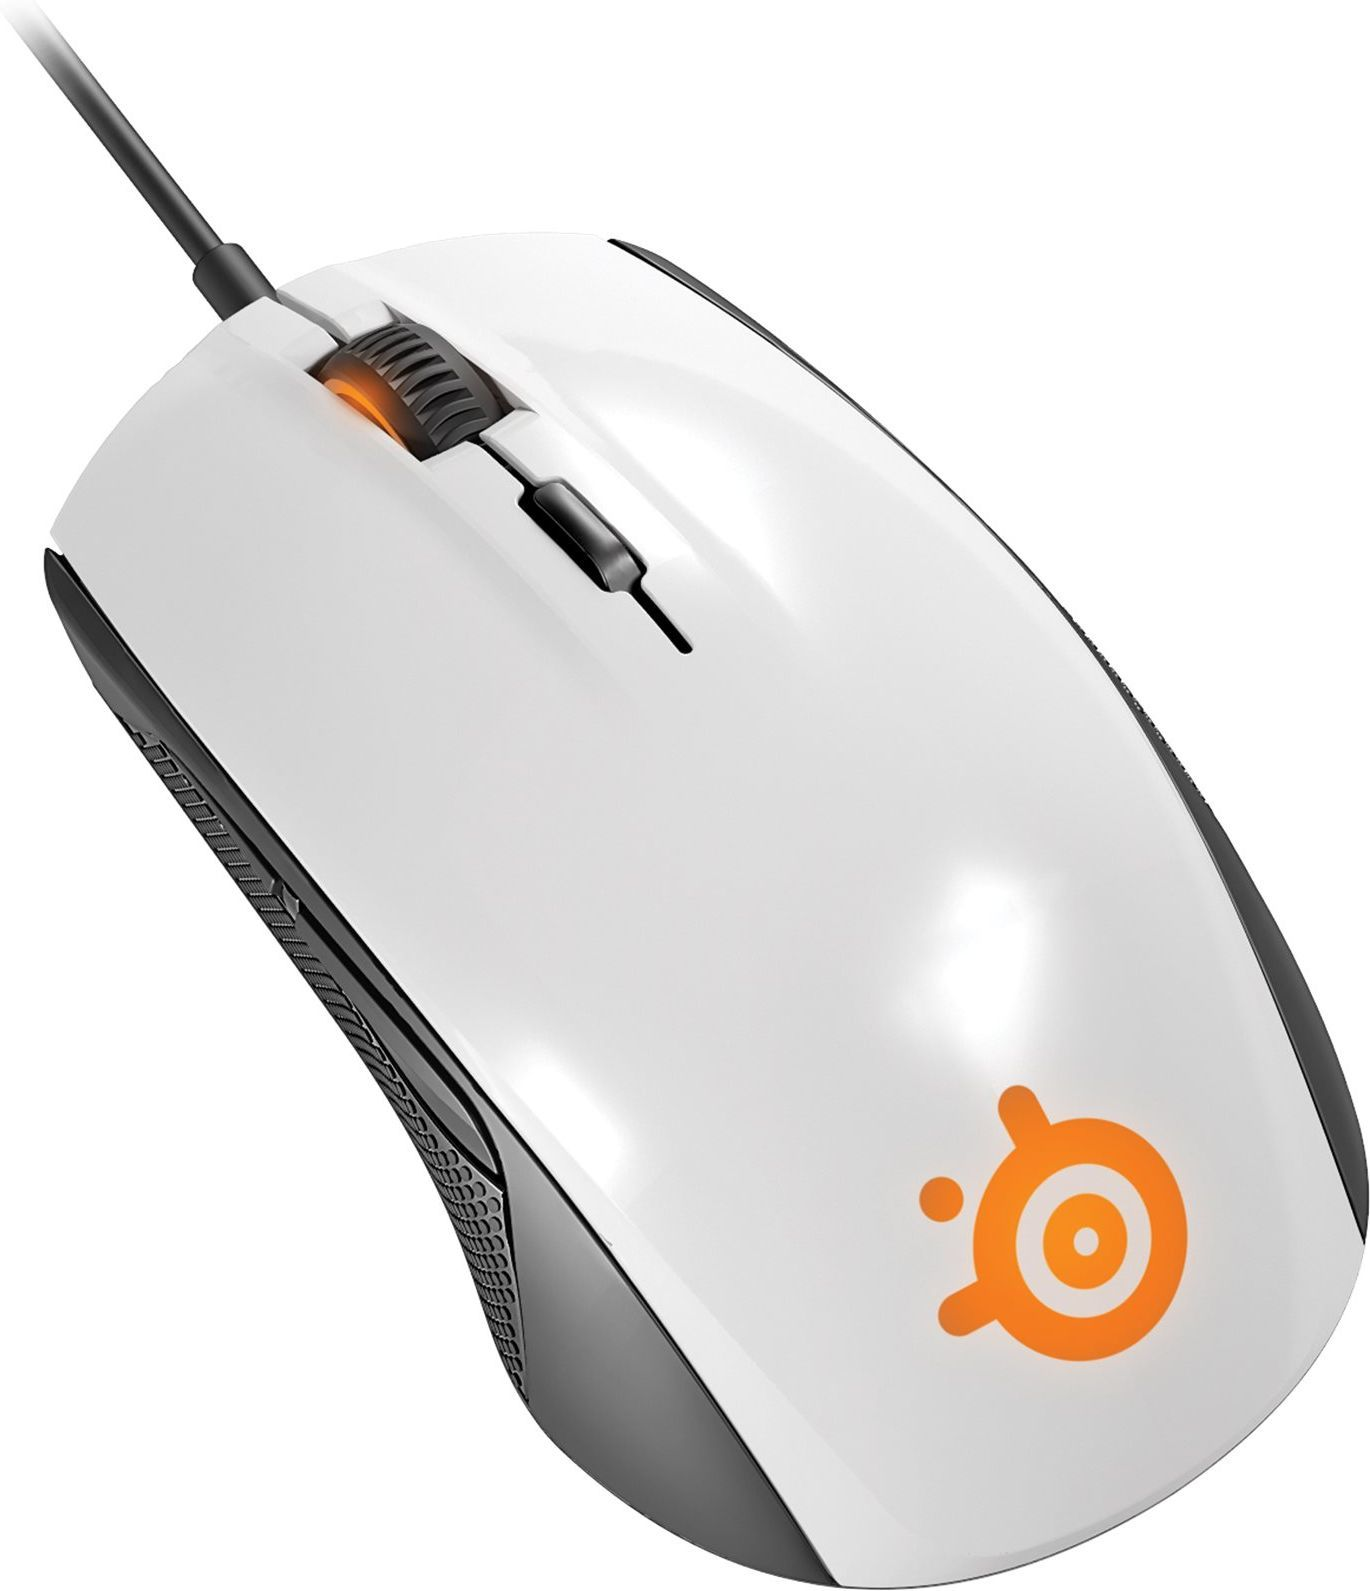 SteelSeries Rival 100 Gaming Mouse - White for PC Games image